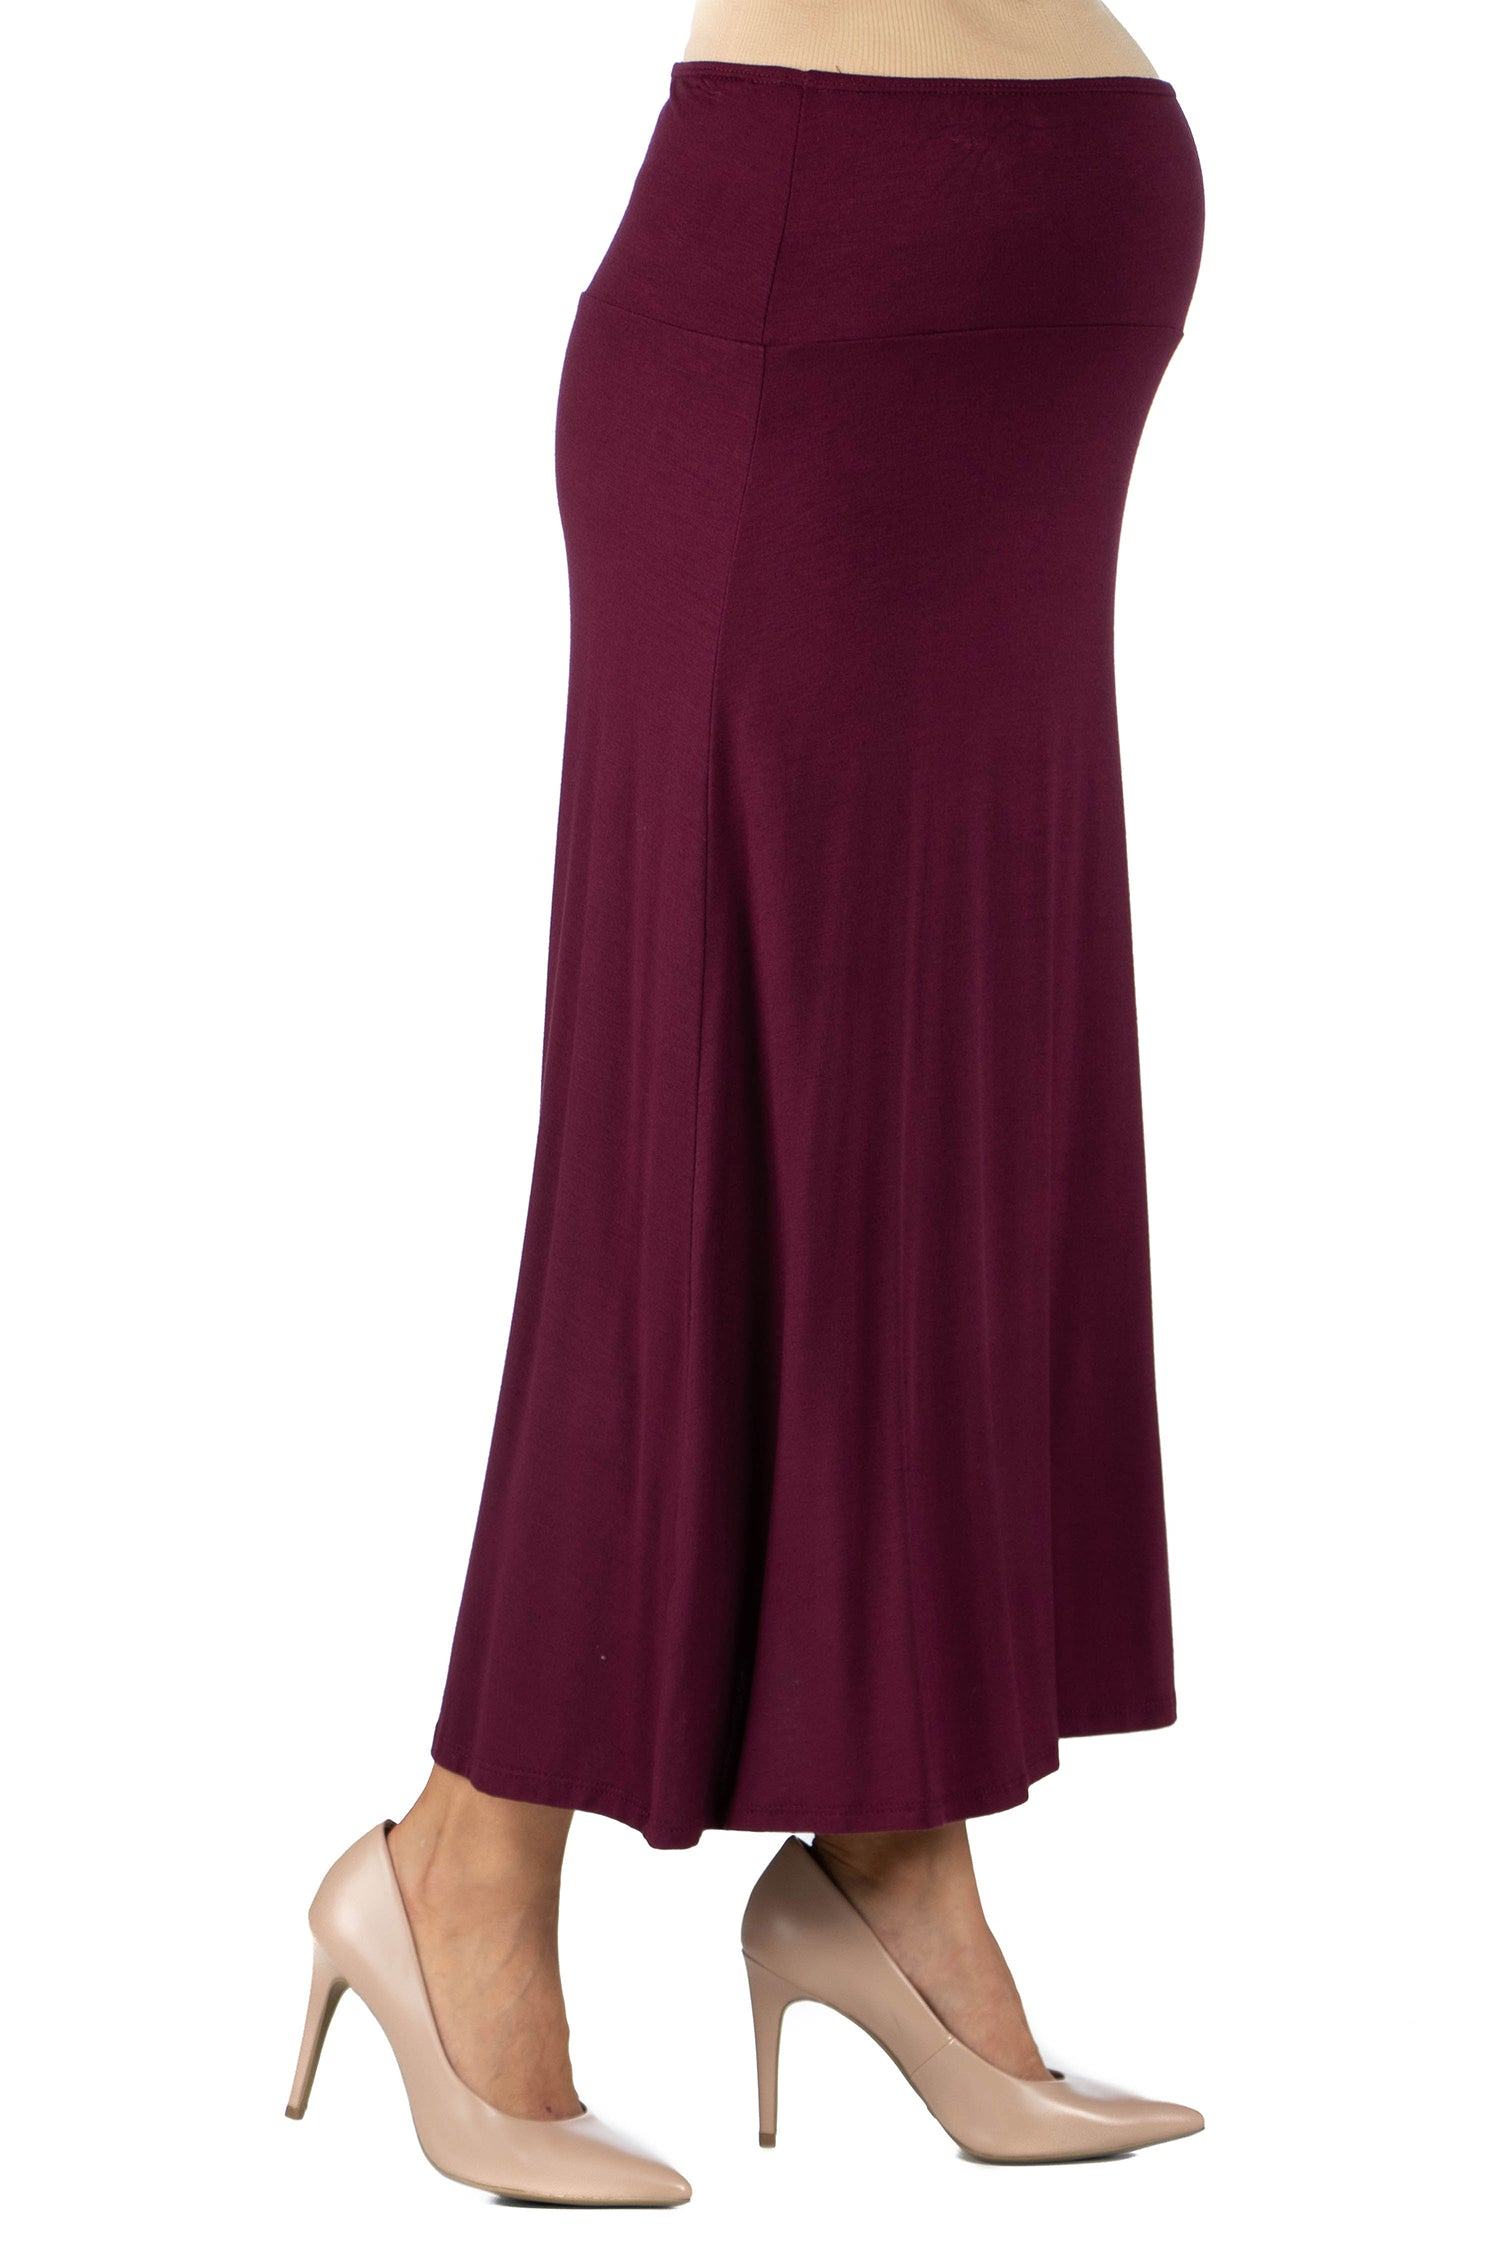 24seven Comfort Apparel Womens Comfortable Fit Elastic Waist Maternity Maxi Skirt-SKIRT-24Seven Comfort Apparel-WINE-1X-24/7 Comfort Apparel